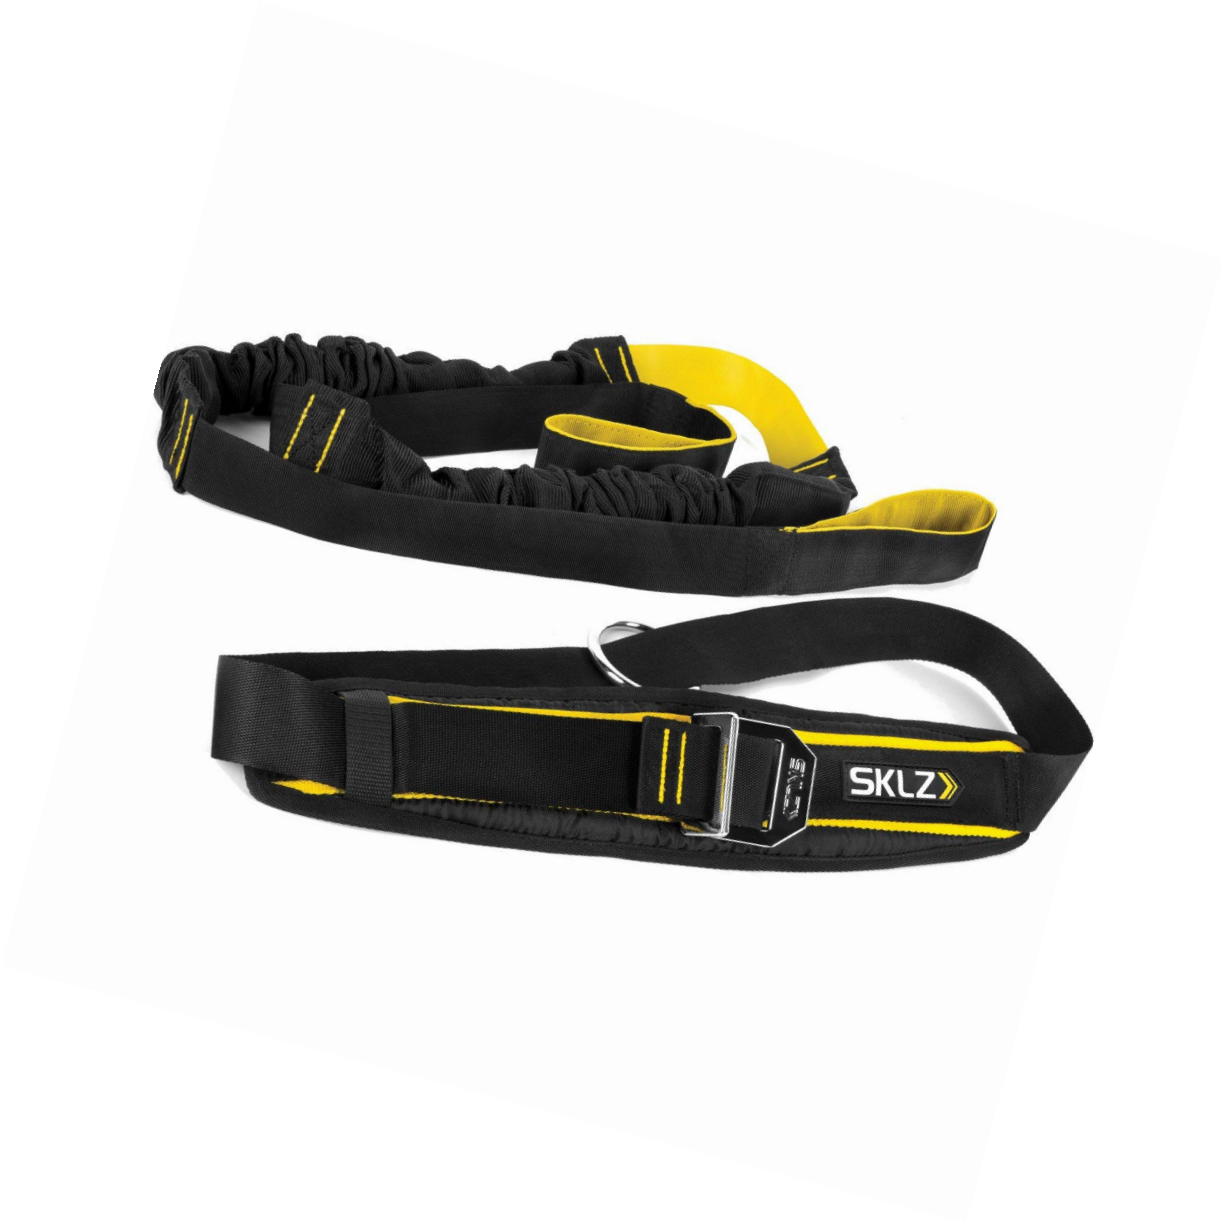 SKLZ Acceleration Trainer, Dynamic Overload and Release Resistance Training Syst